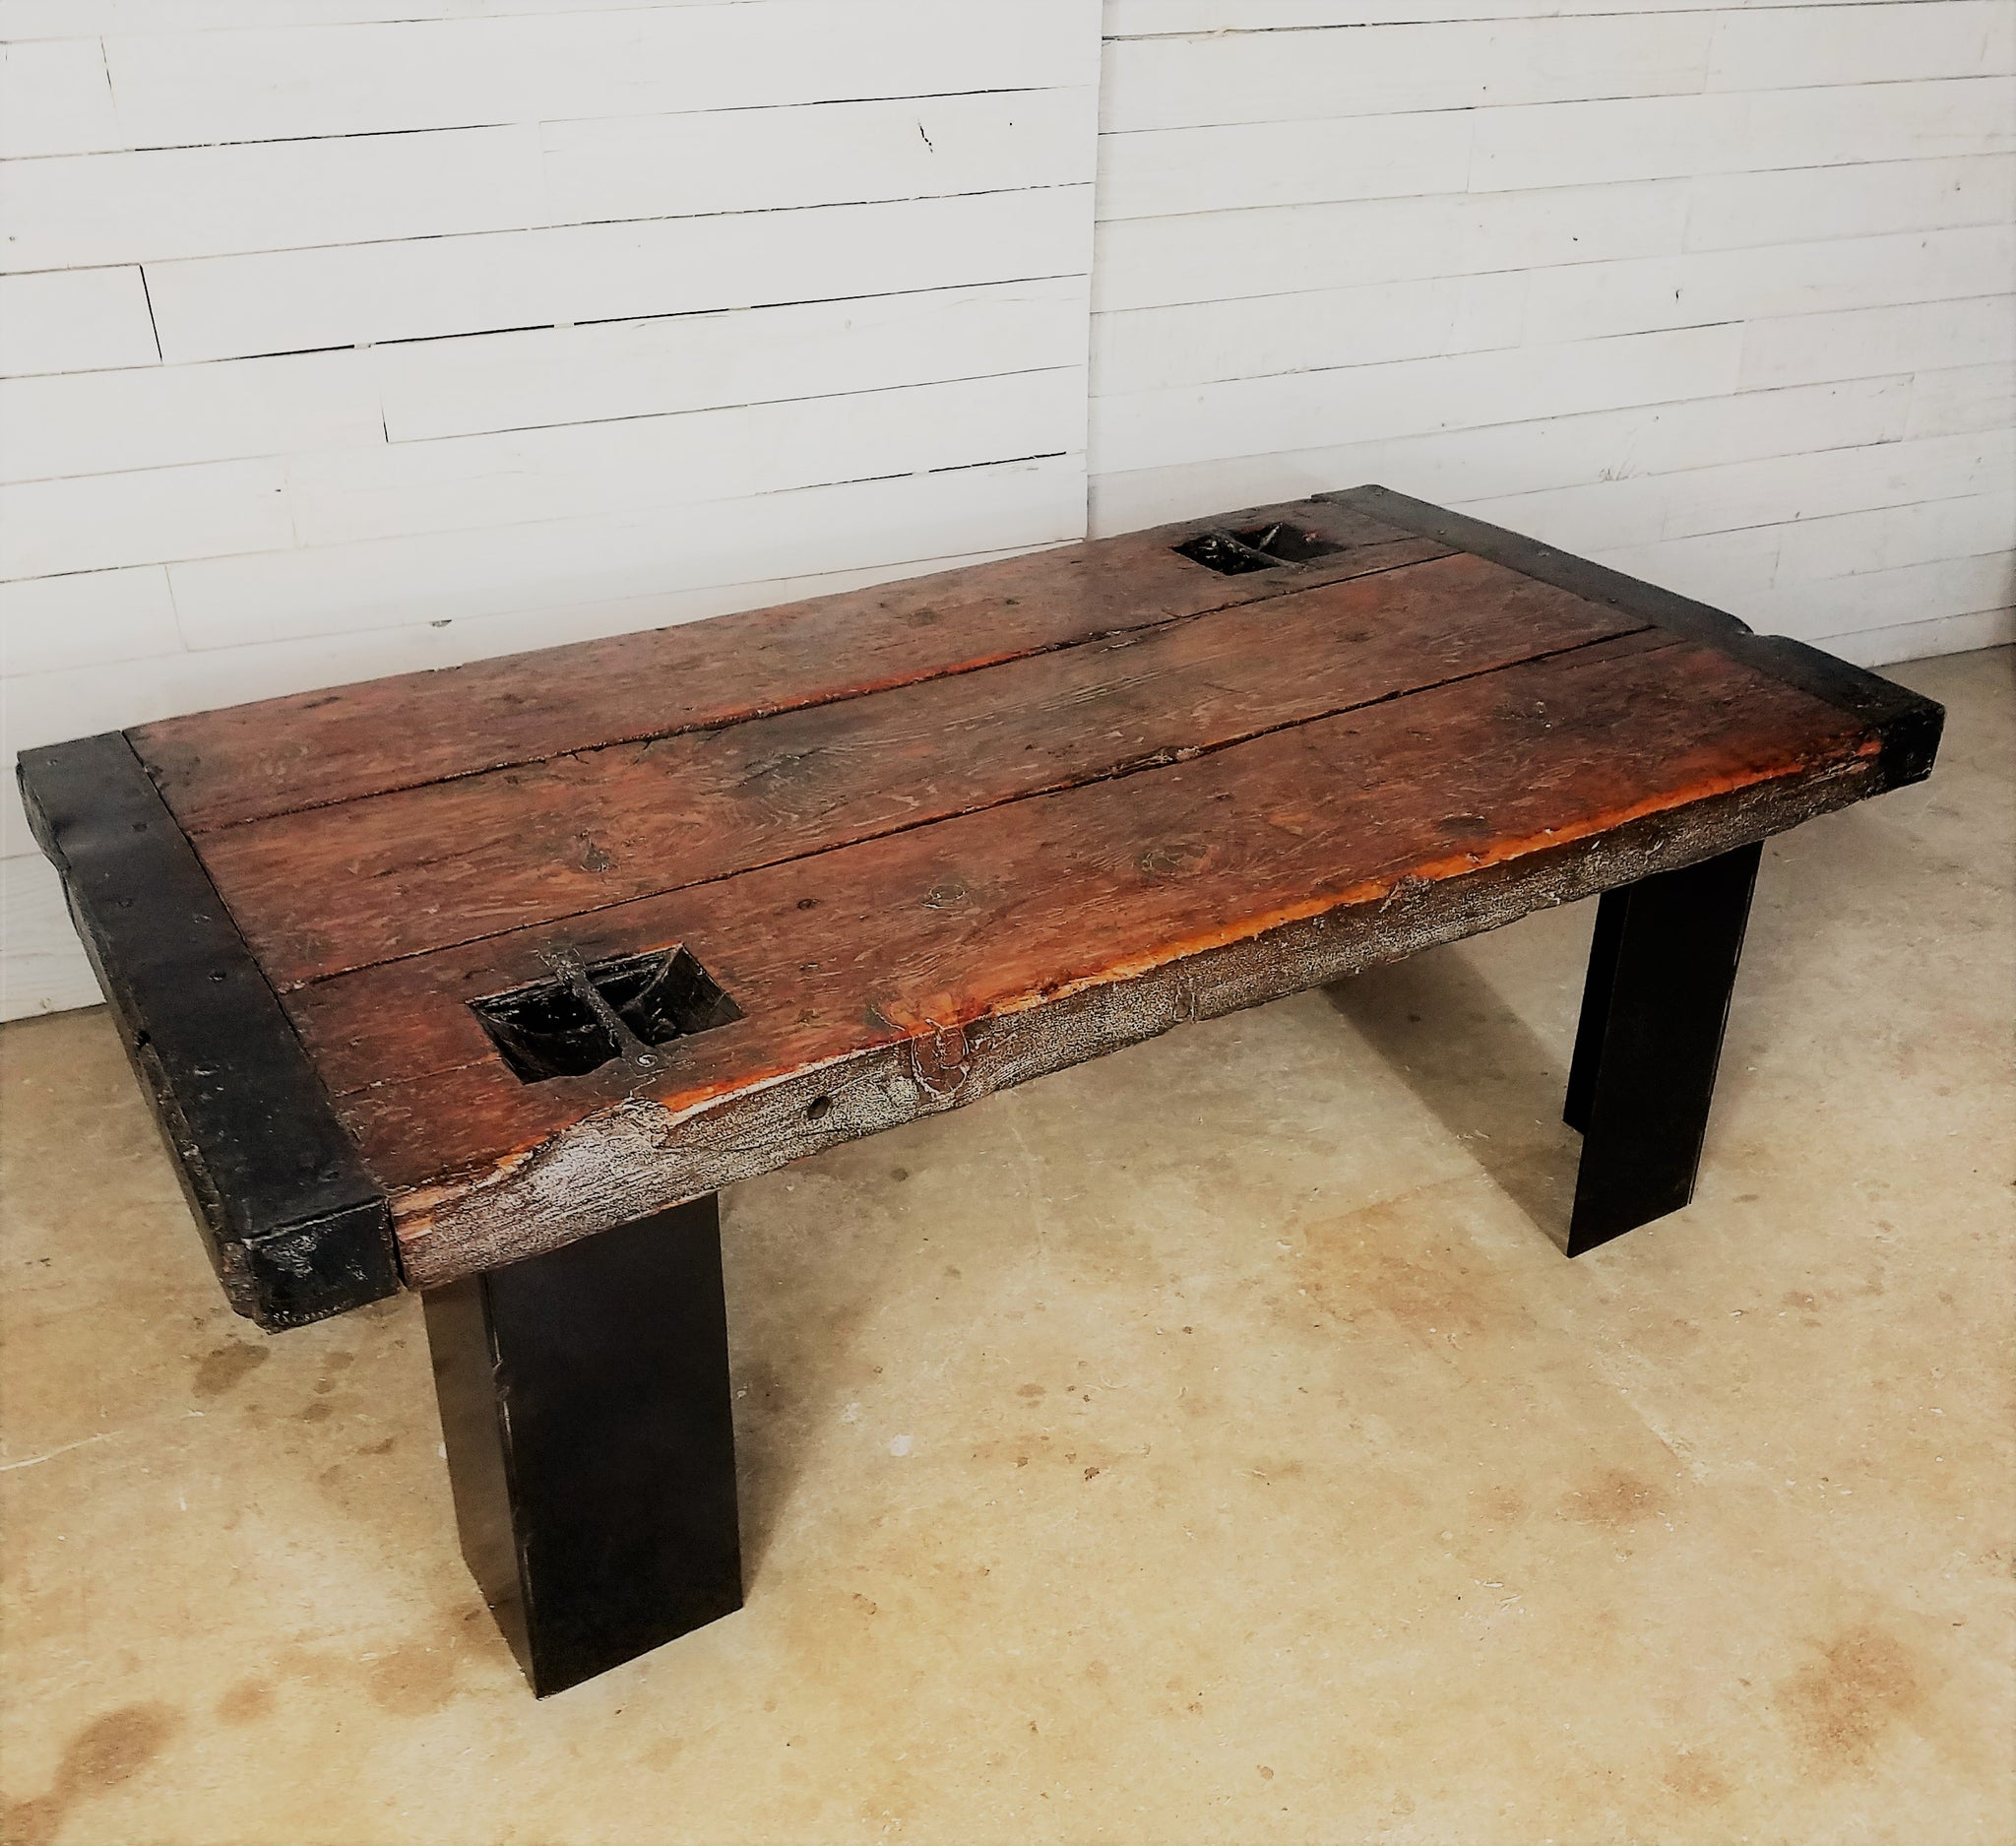 ... Reclaimed Wood Coffee Table With Metal Base